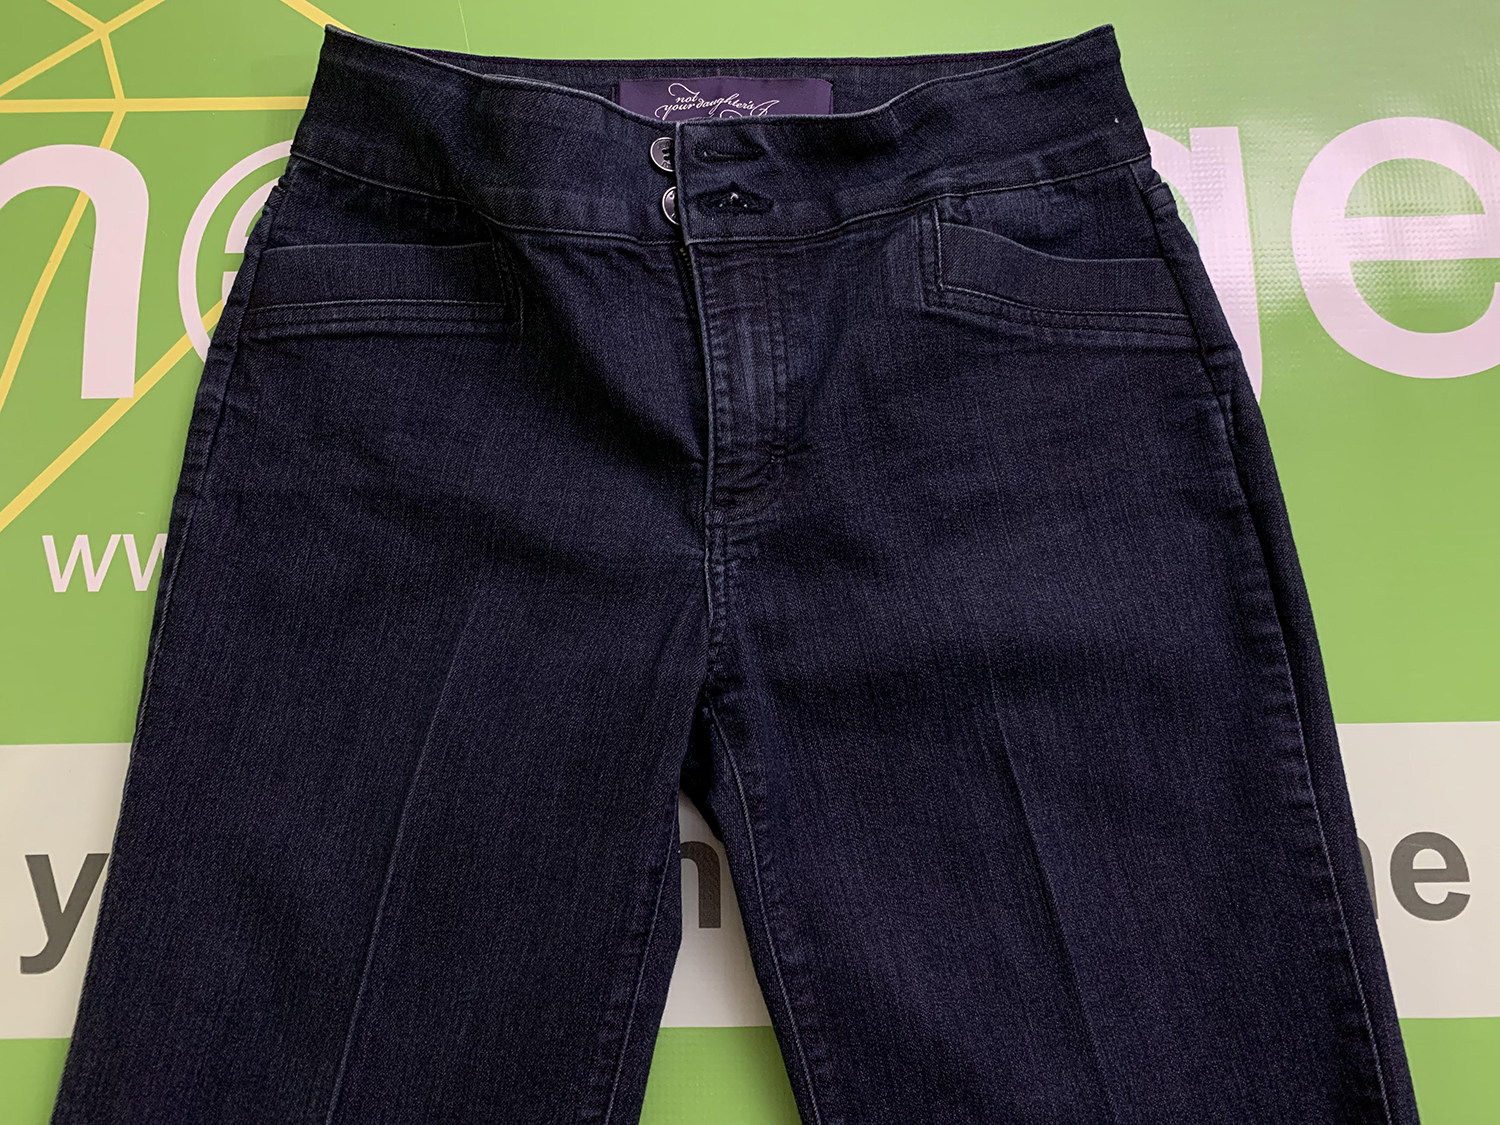 NYDJ Not Your Daughters Jeans Womens Blue Stretch Jeans Size 4